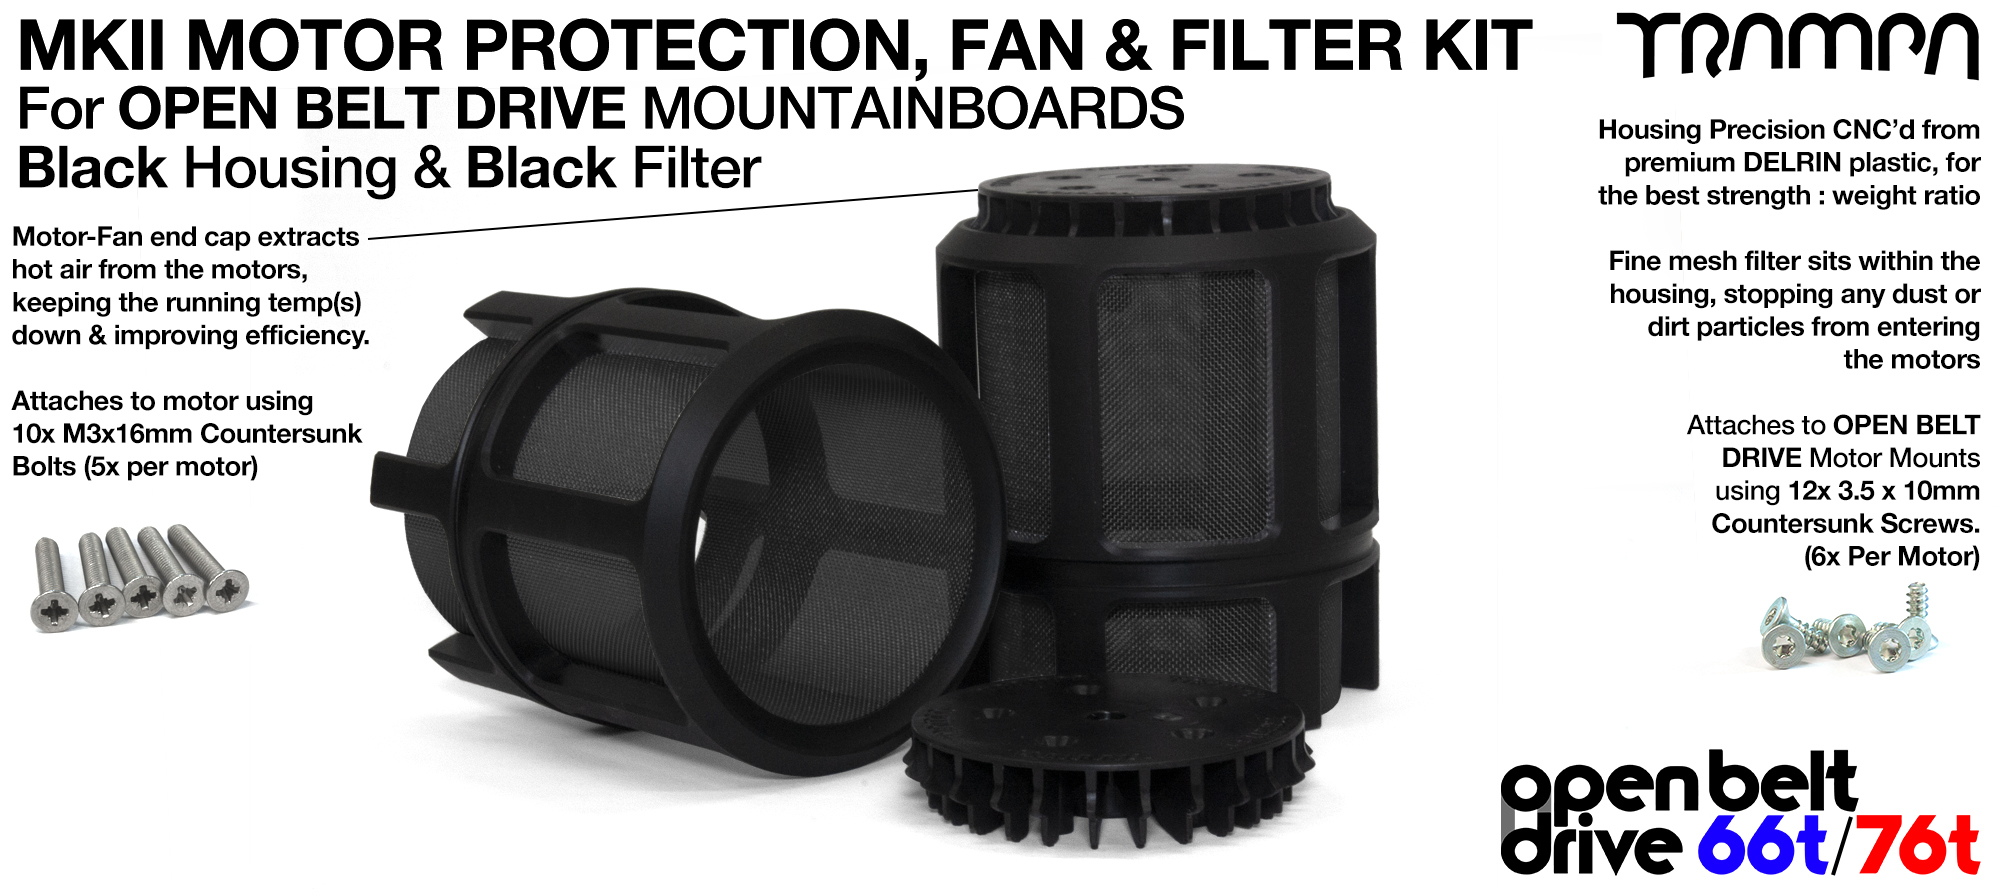 BLACK Mesh filter in Motor Protection Cage with Fan